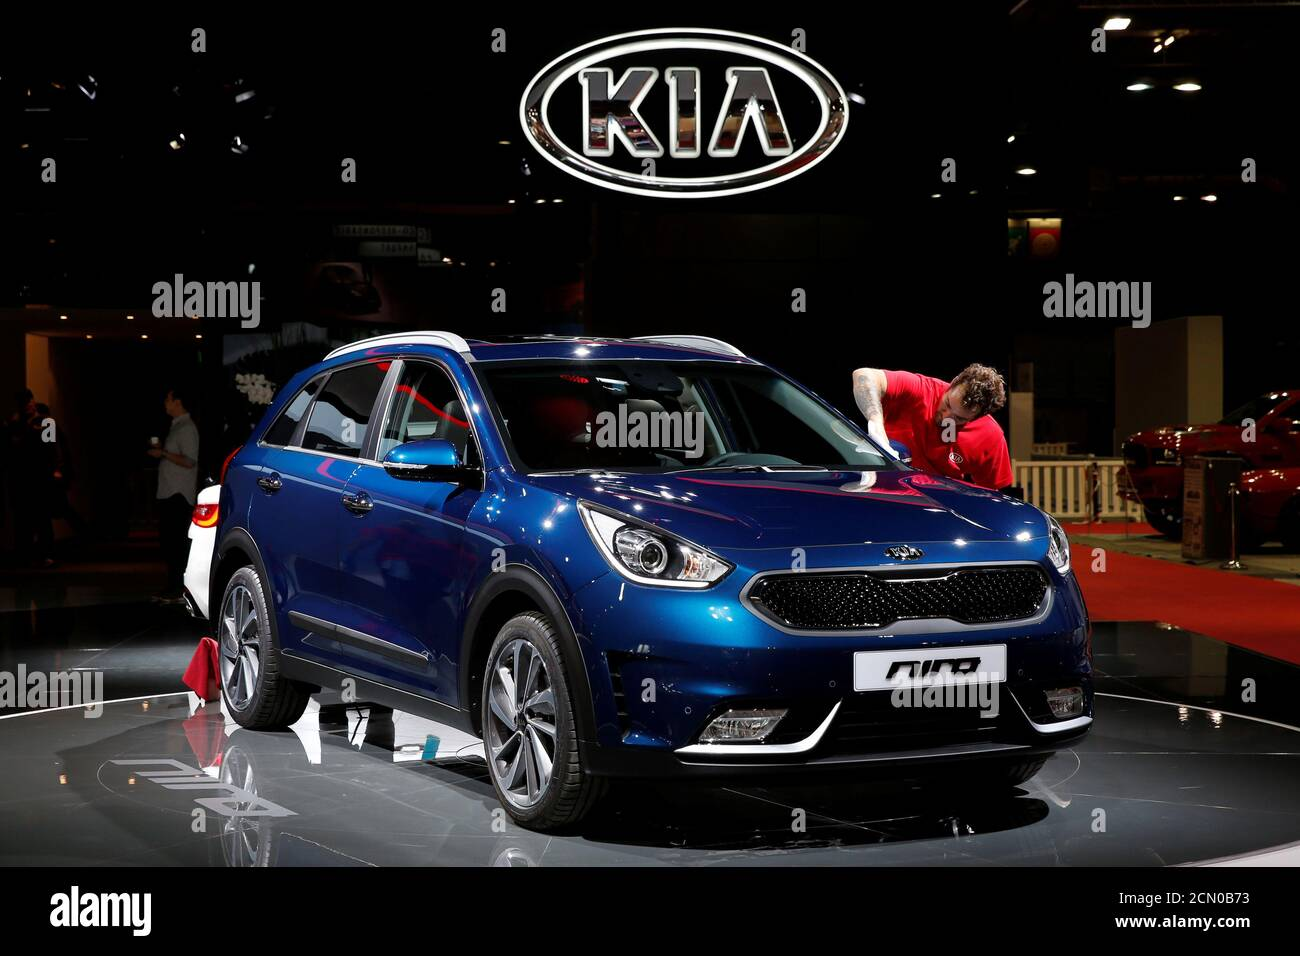 The Kia Niro is displayed on media day at the Paris auto show, in Paris, France, September 29, 2016. REUTERS/Benoit Tessier Banque D'Images